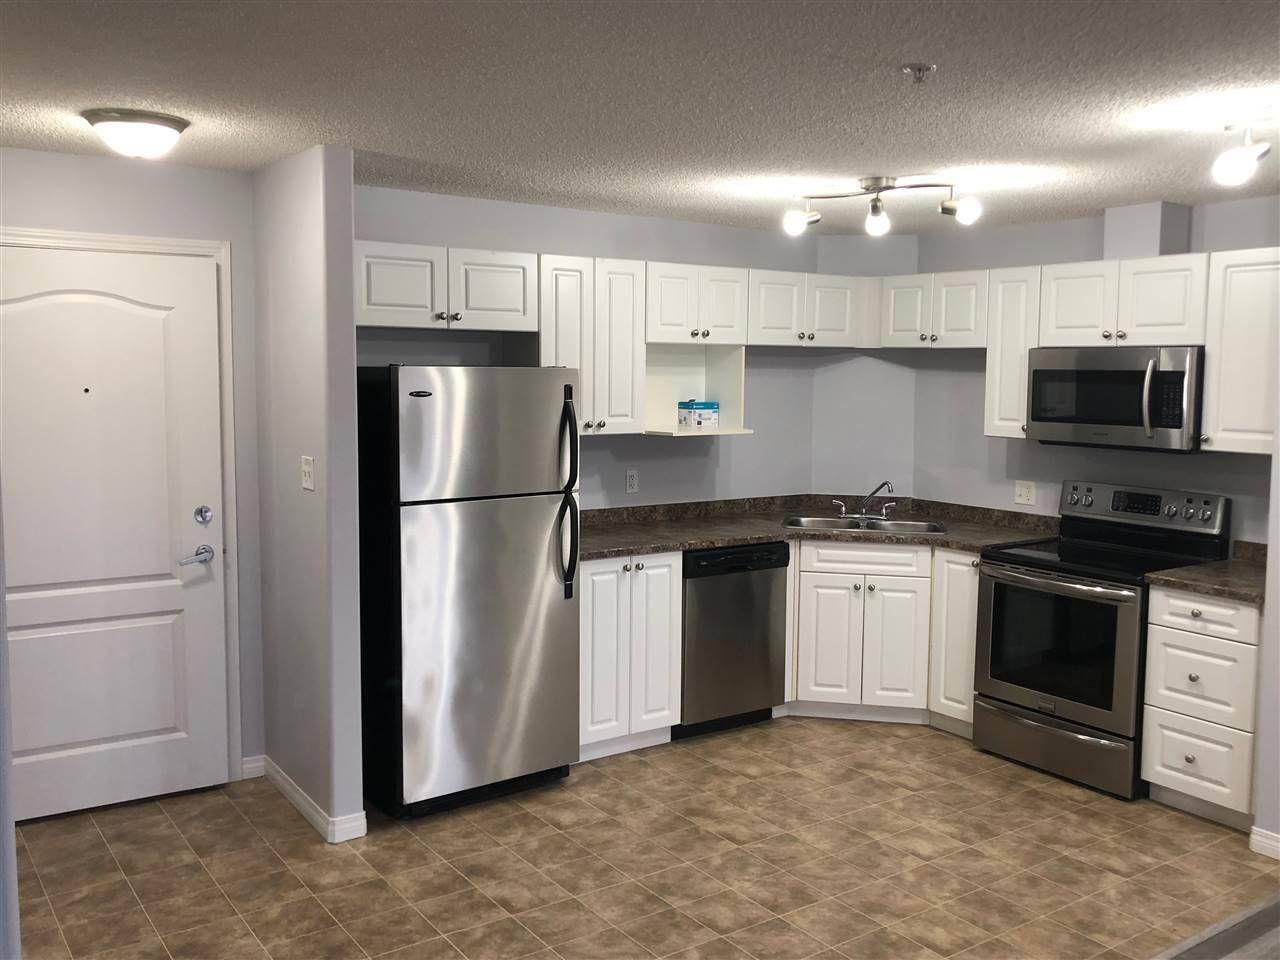 Condo for sale at 330 Clareview Station Dr Nw Unit 1324 Edmonton Alberta - MLS: E4174302